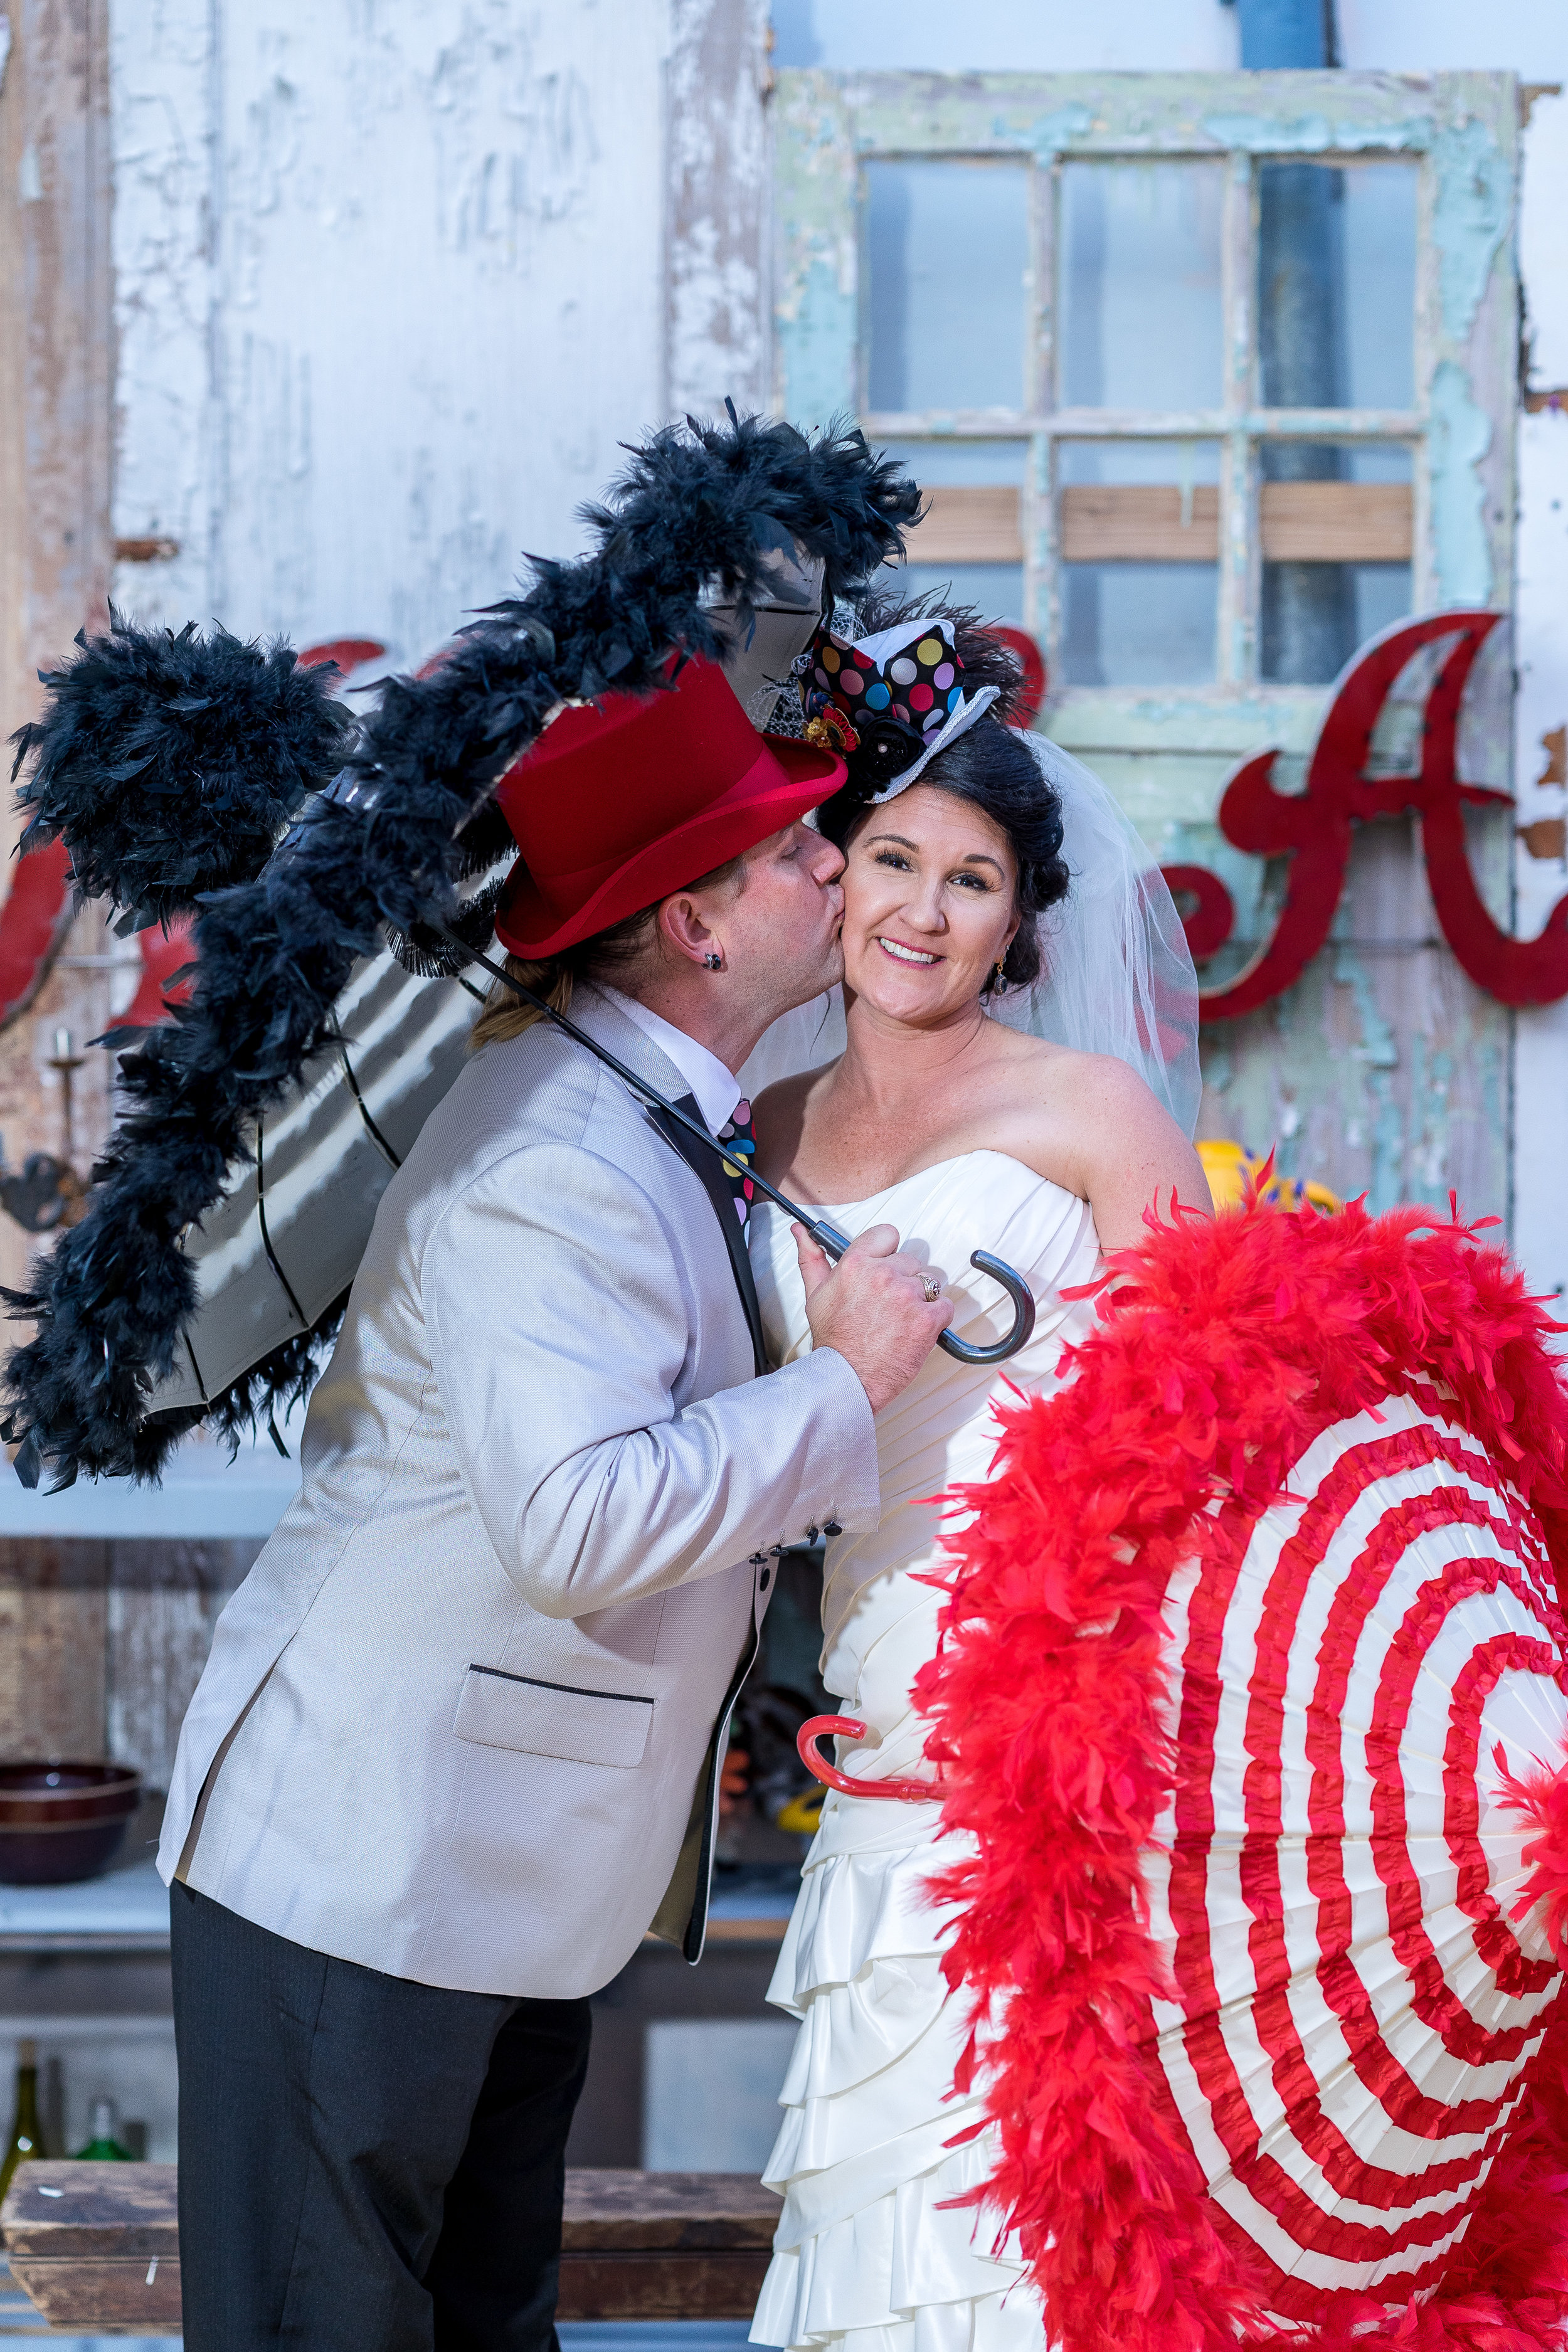 image of bride and groom with parasols kiss wedding with tux and dress